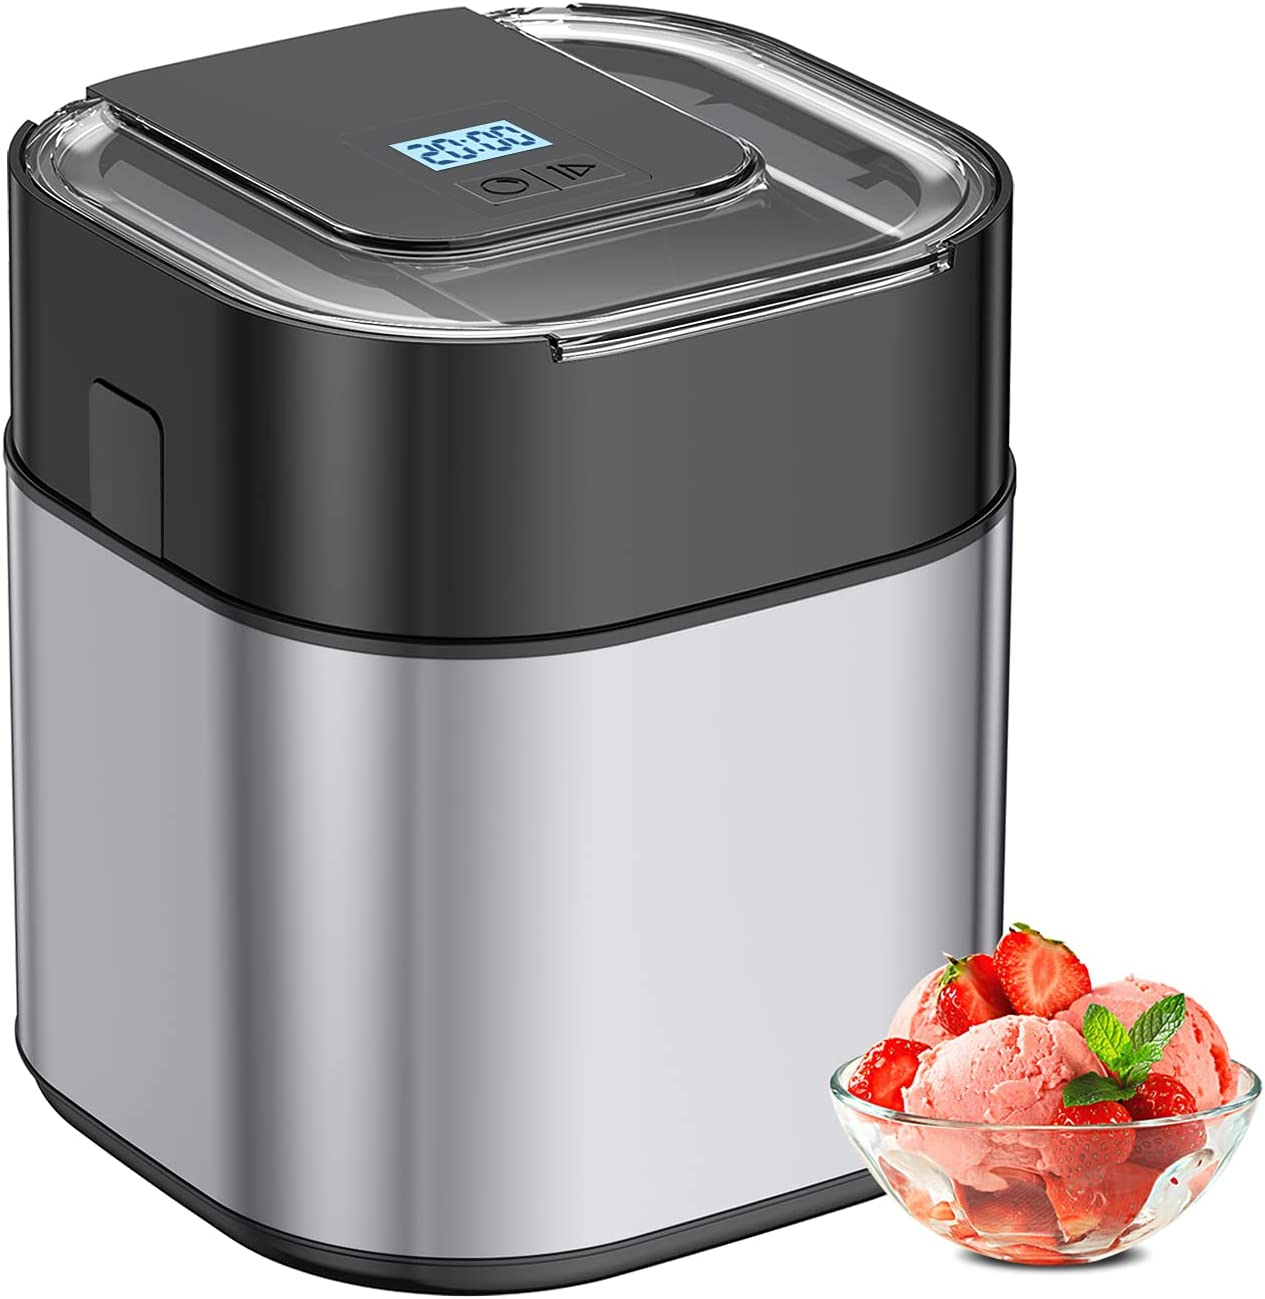 Popularity Ice Free shipping New Cream Maker Machine For Home Steel Stainless 1.5 Quart